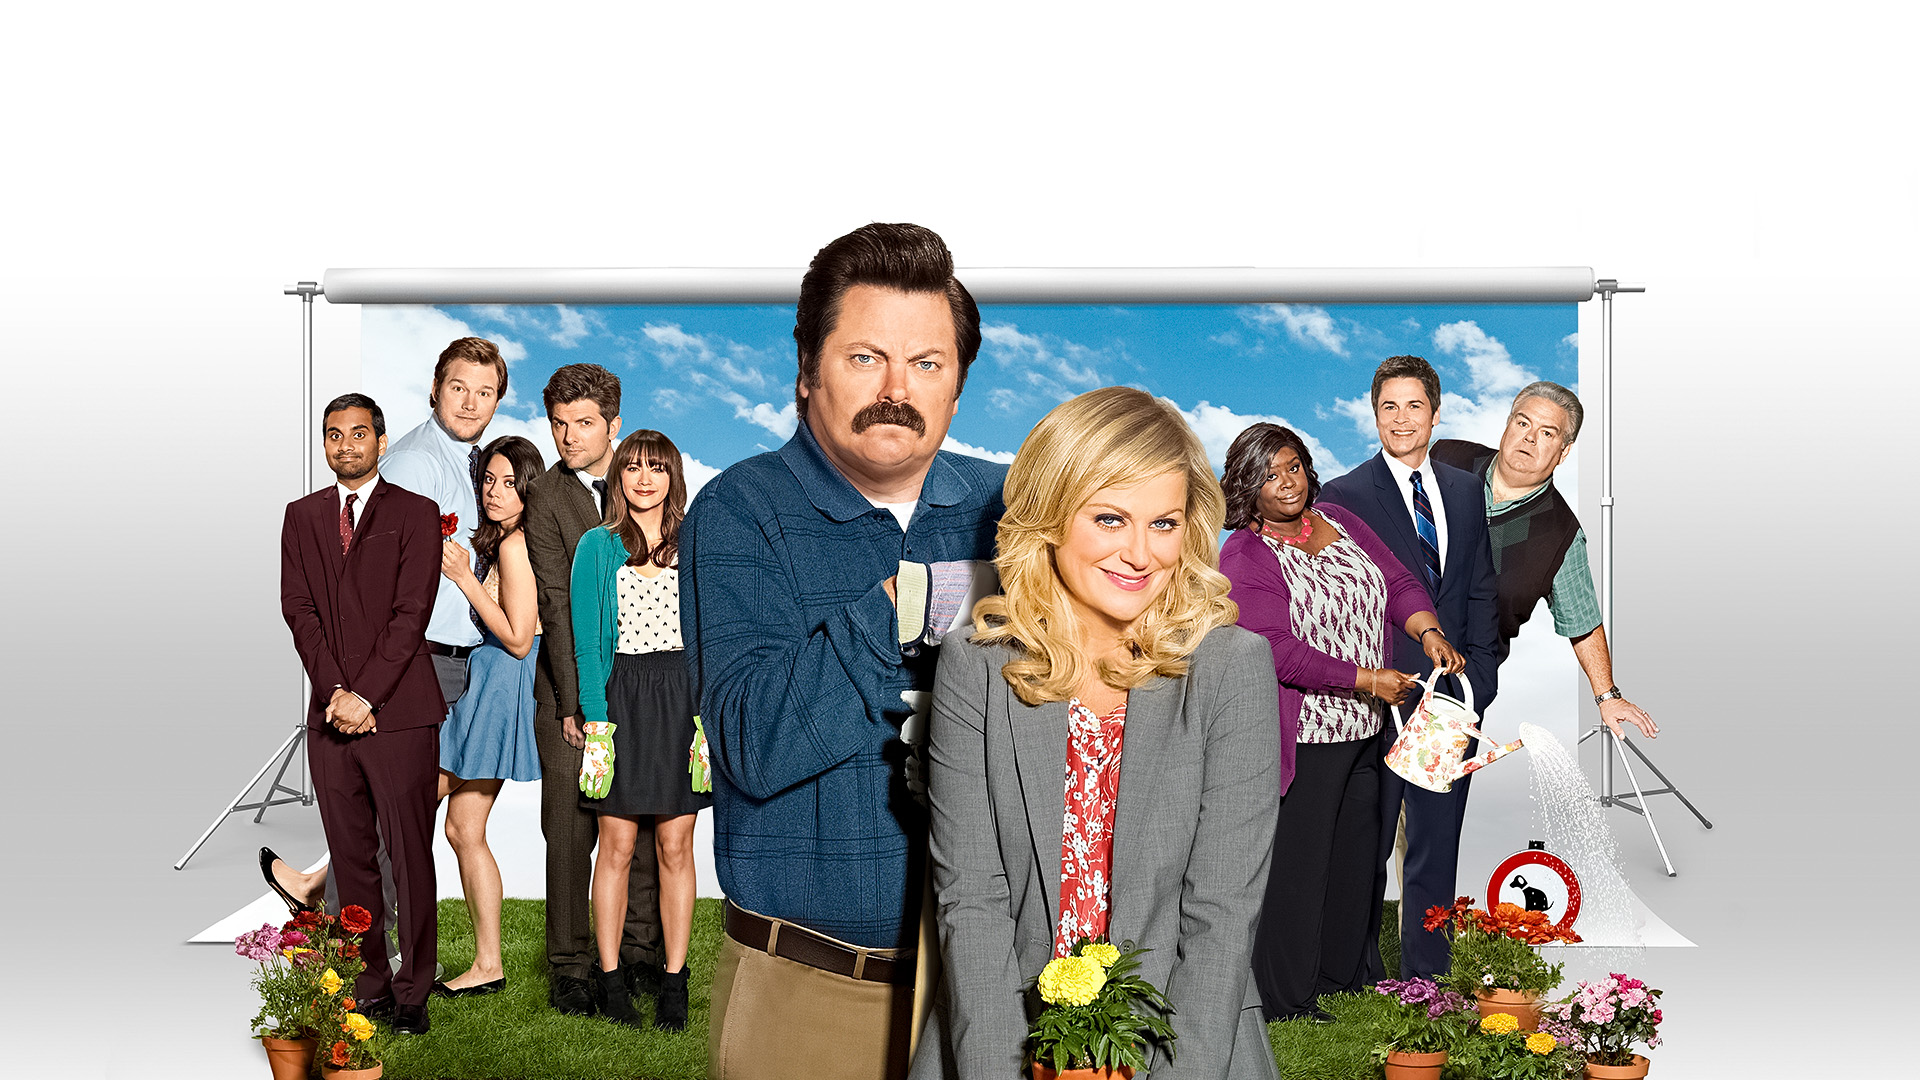 parks-and-recreation-5419df77aef24